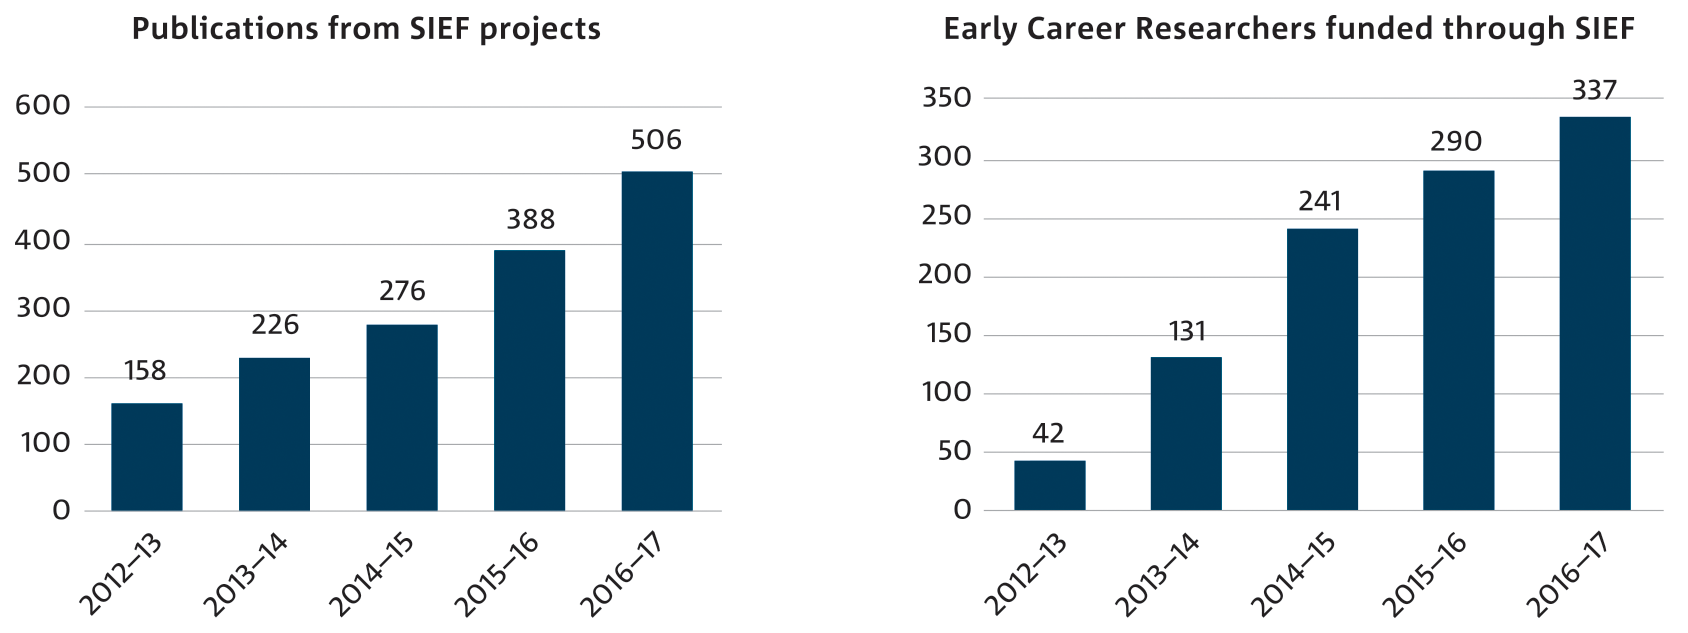 Two bar charts displaying Publications from SIEF projects 2012 to 2017, and Early Career Researchers funded through SIEF 2012 to 2017.